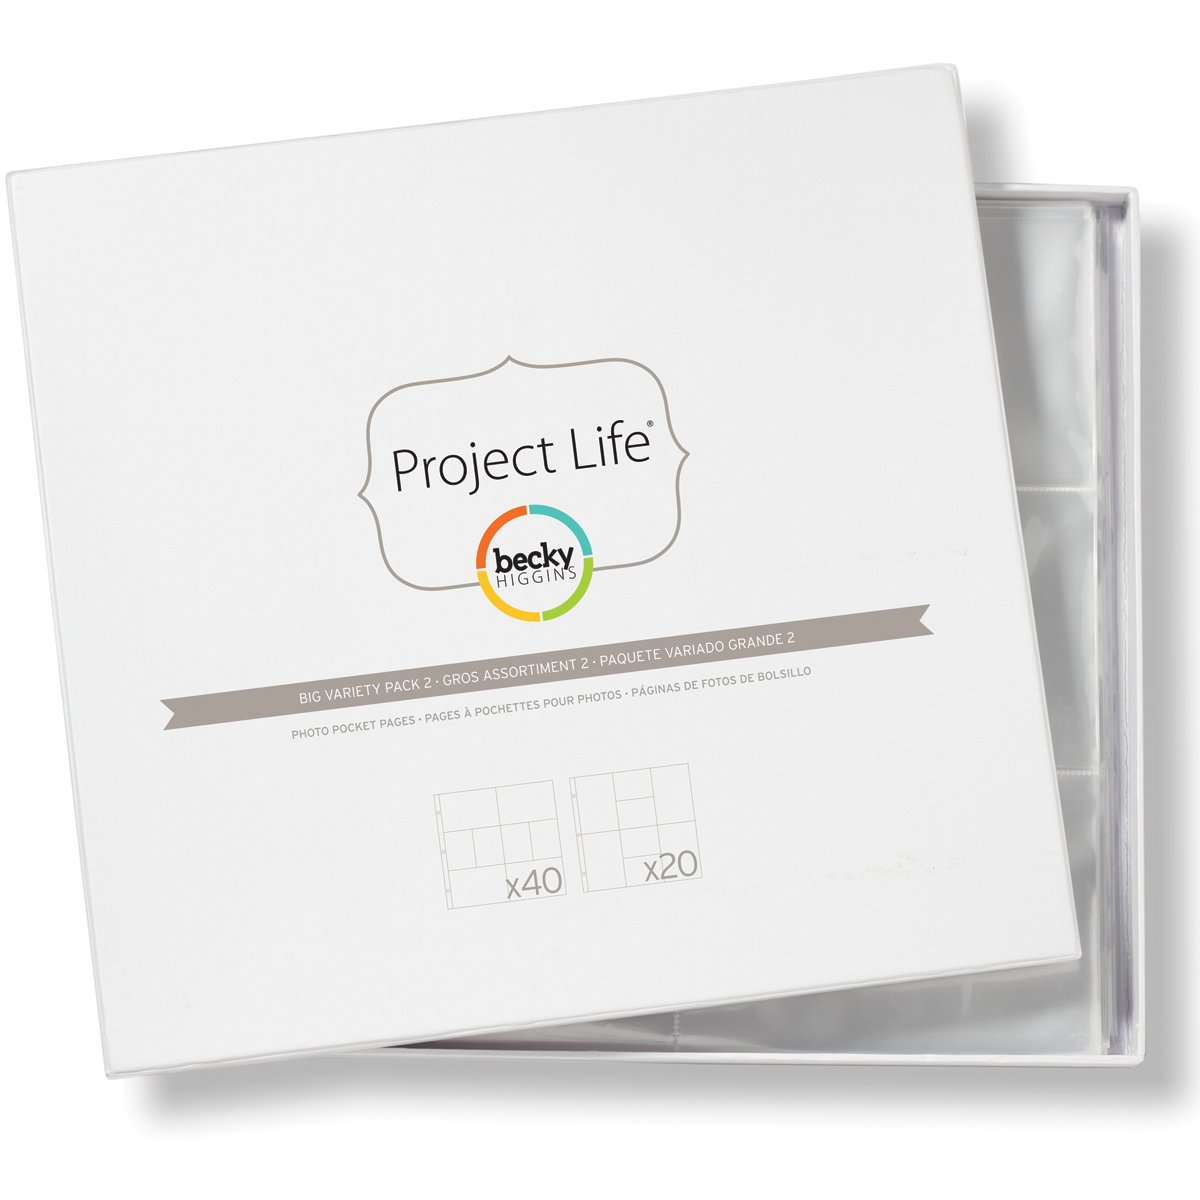 Project Life by Becky Higgins Photo Pocket Pages - Big Variety Pack 2